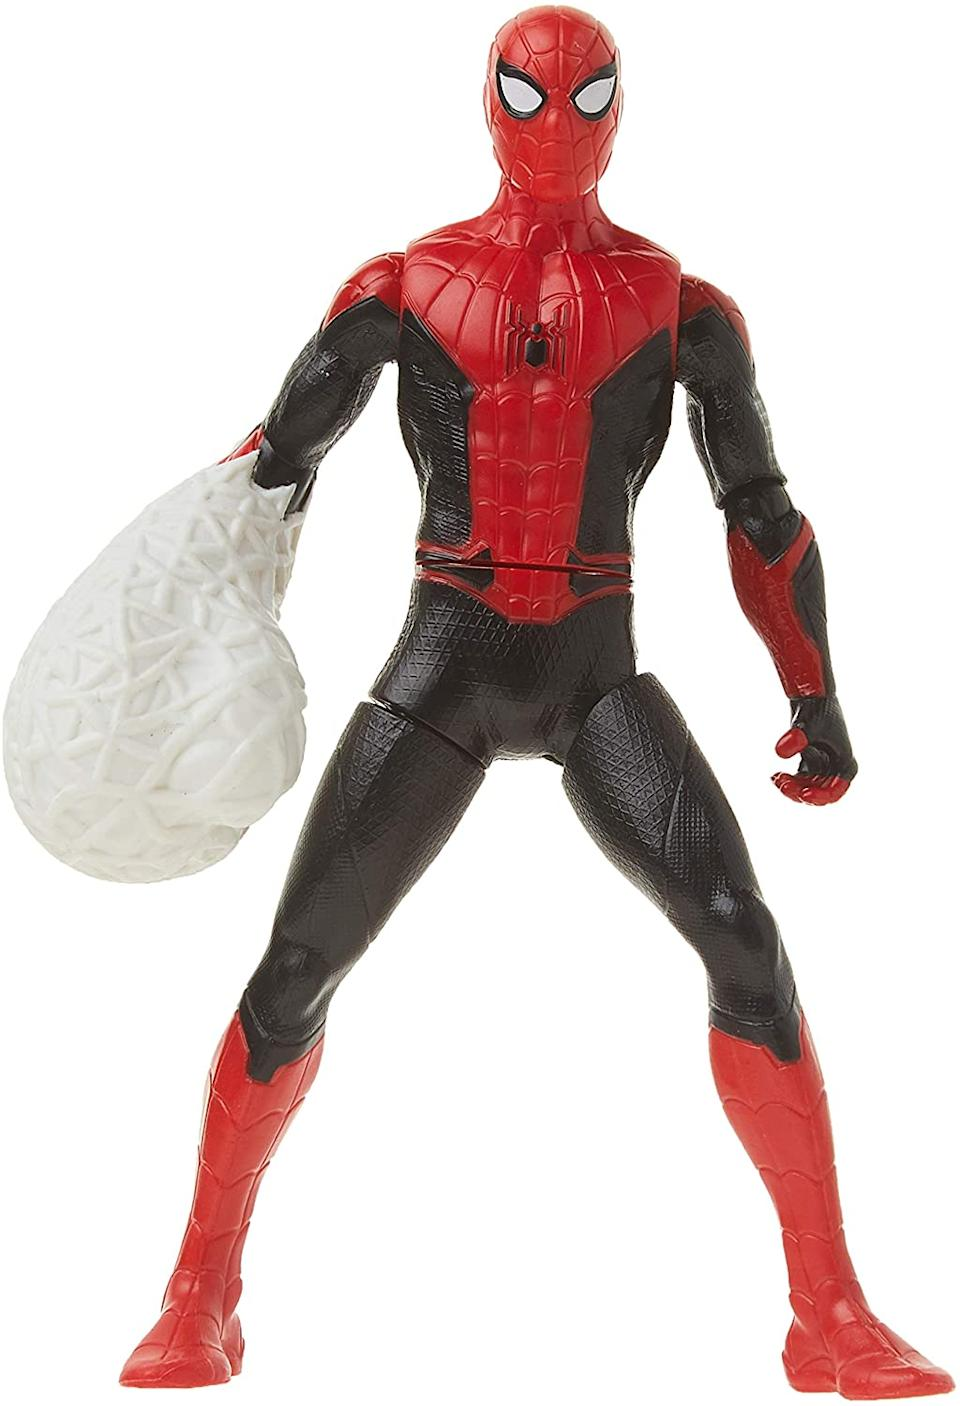 Marvel Spider-Man: Far from Home Web Punch Spider-Man. Image via Amazon.